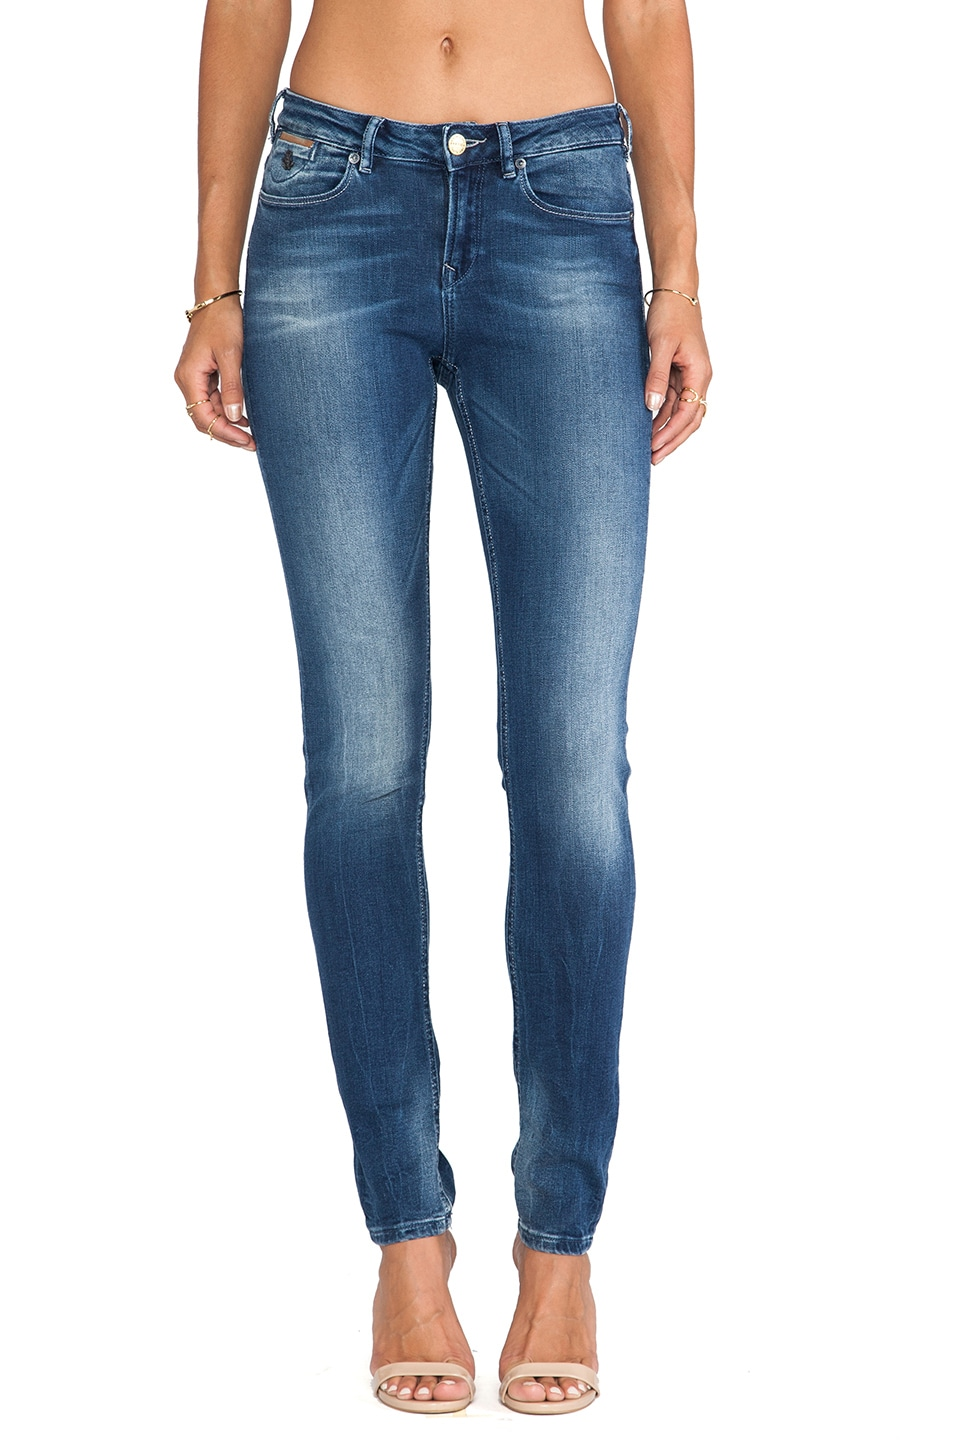 Maison Scotch Parisienne Skinny in Med Denim